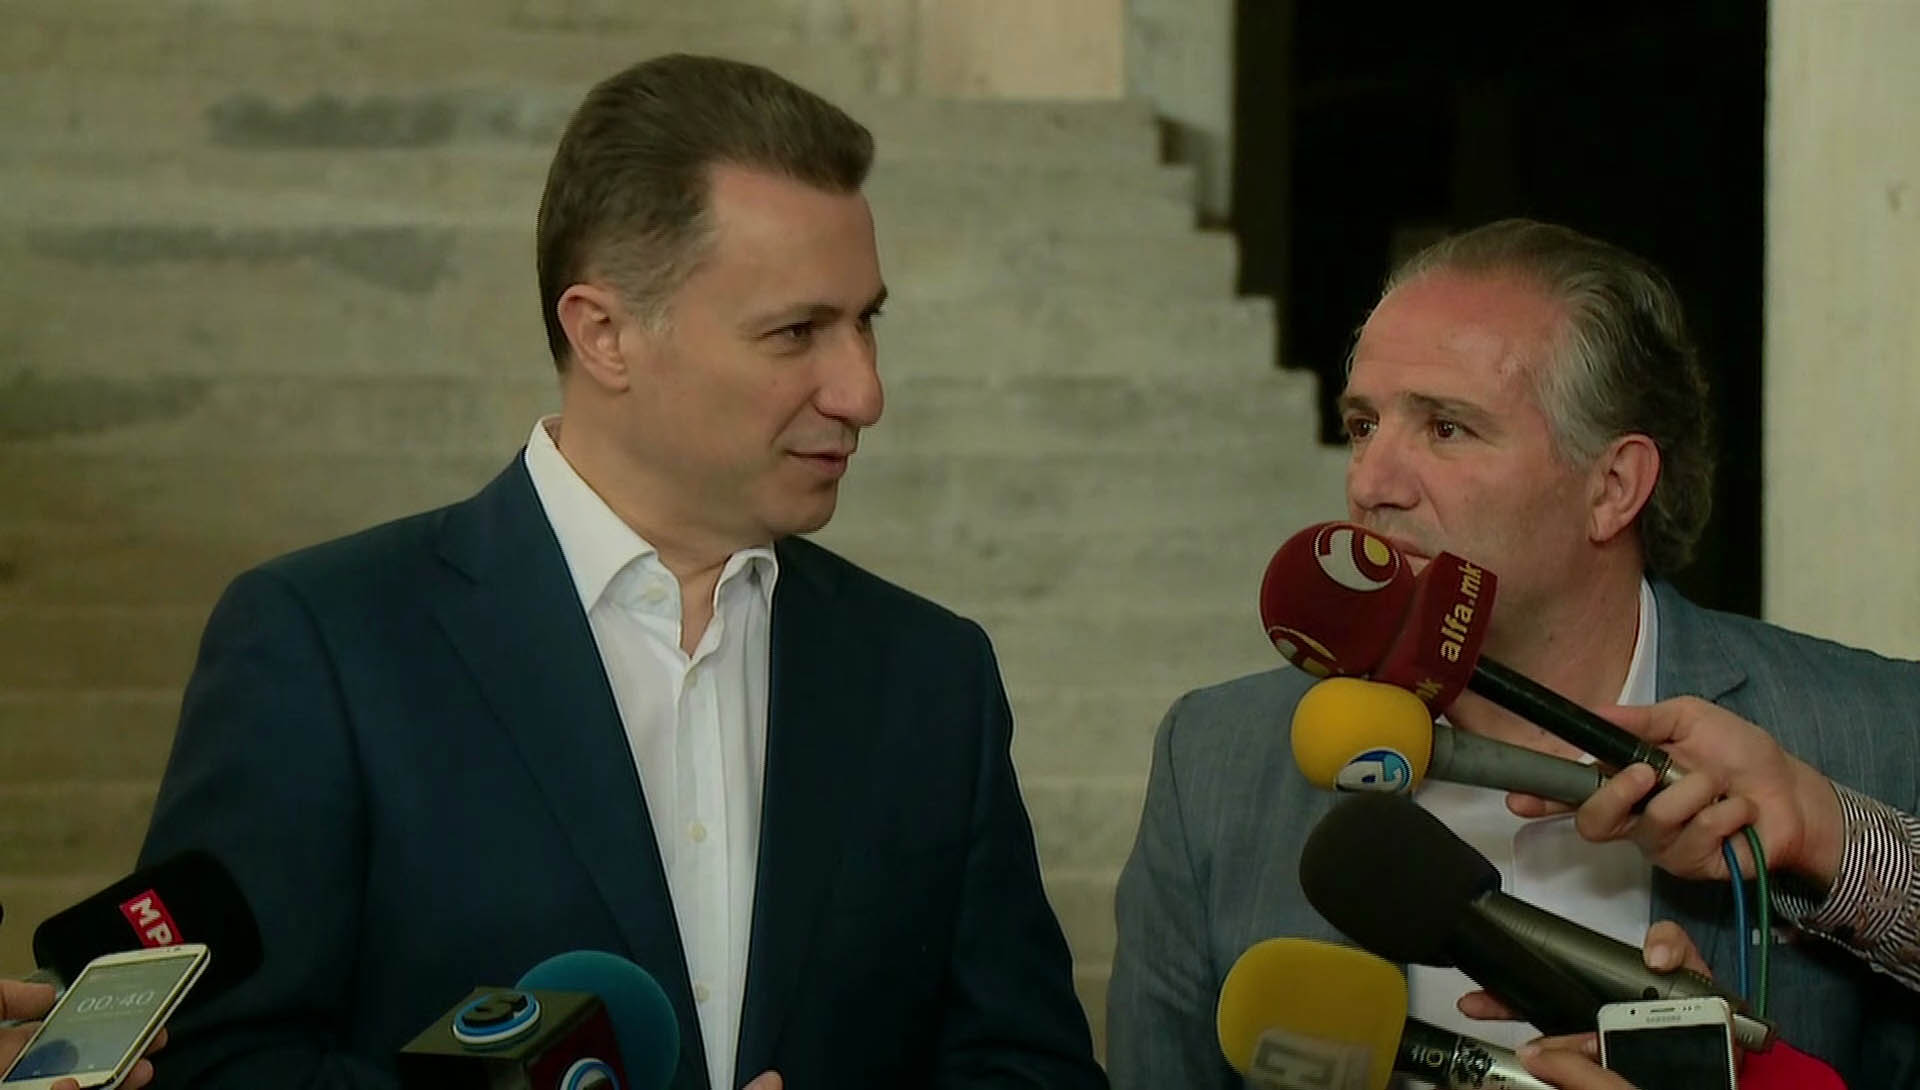 Nikola Gruevski is sentenced to two years in prison